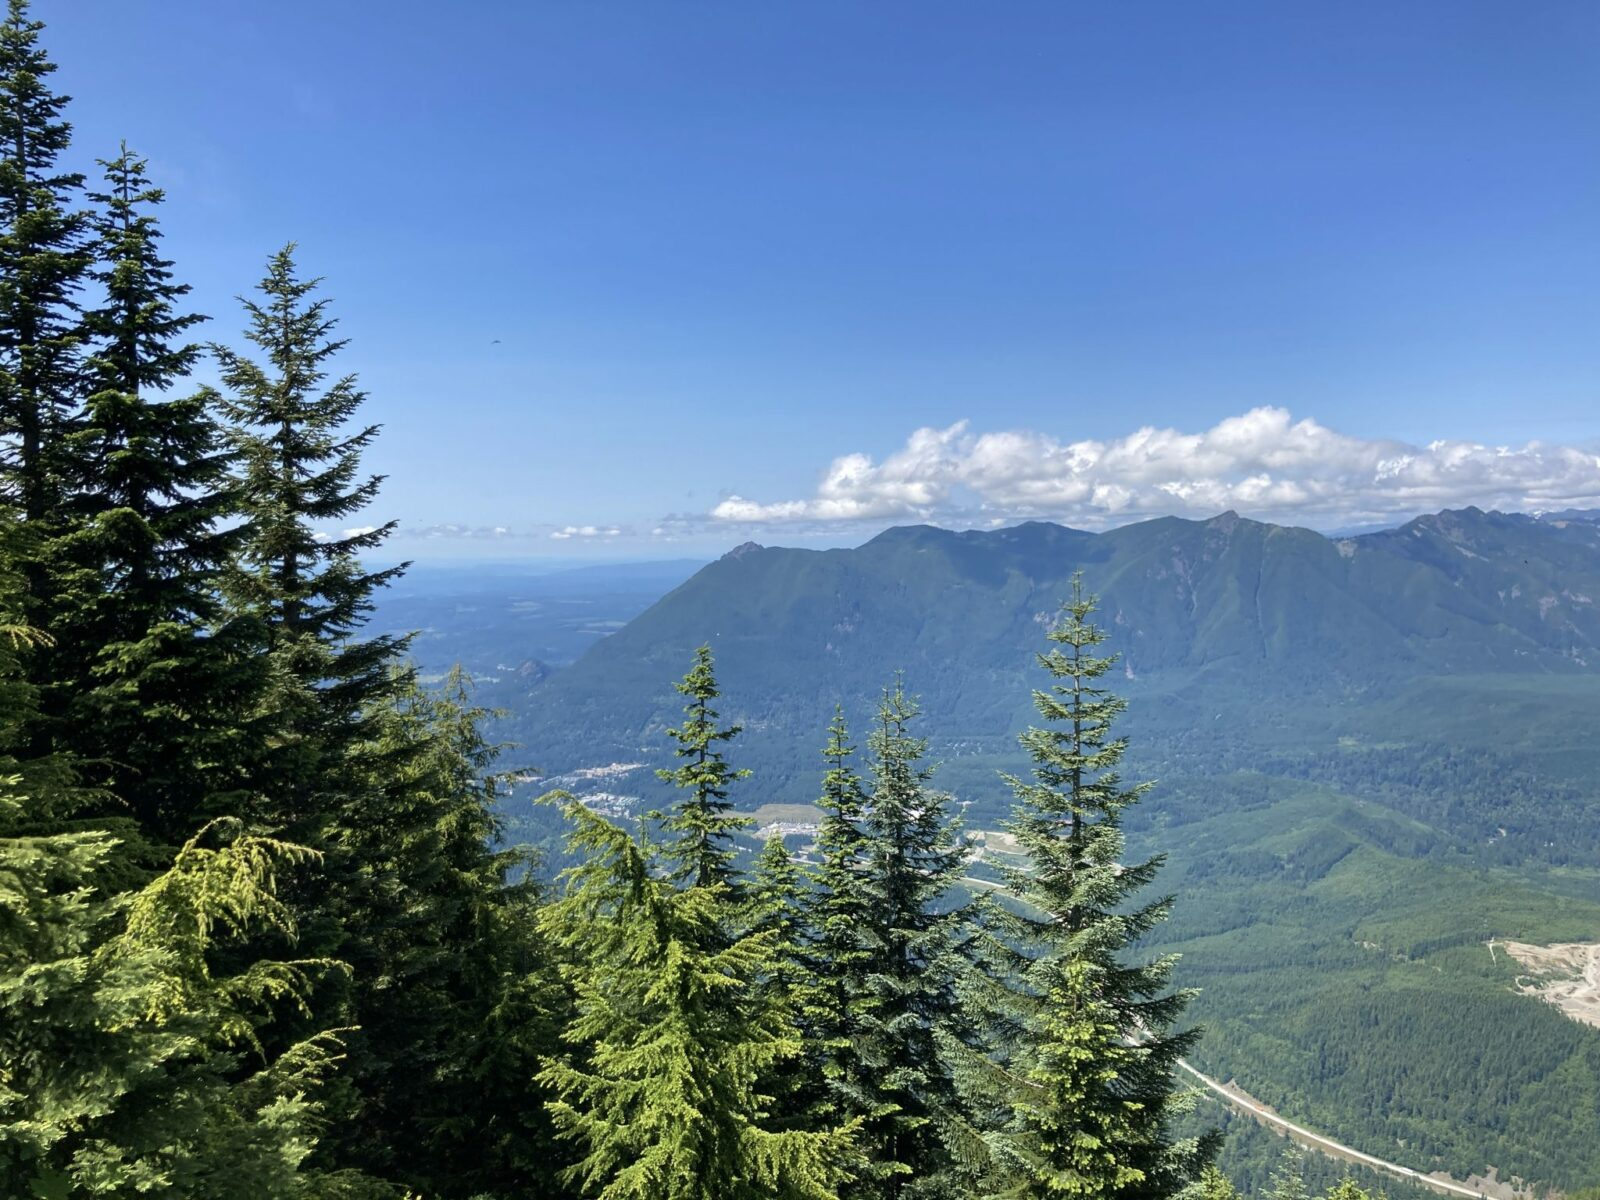 Mt Si and other peaks are seen across the valley of North Bend from the Mt Washington summit